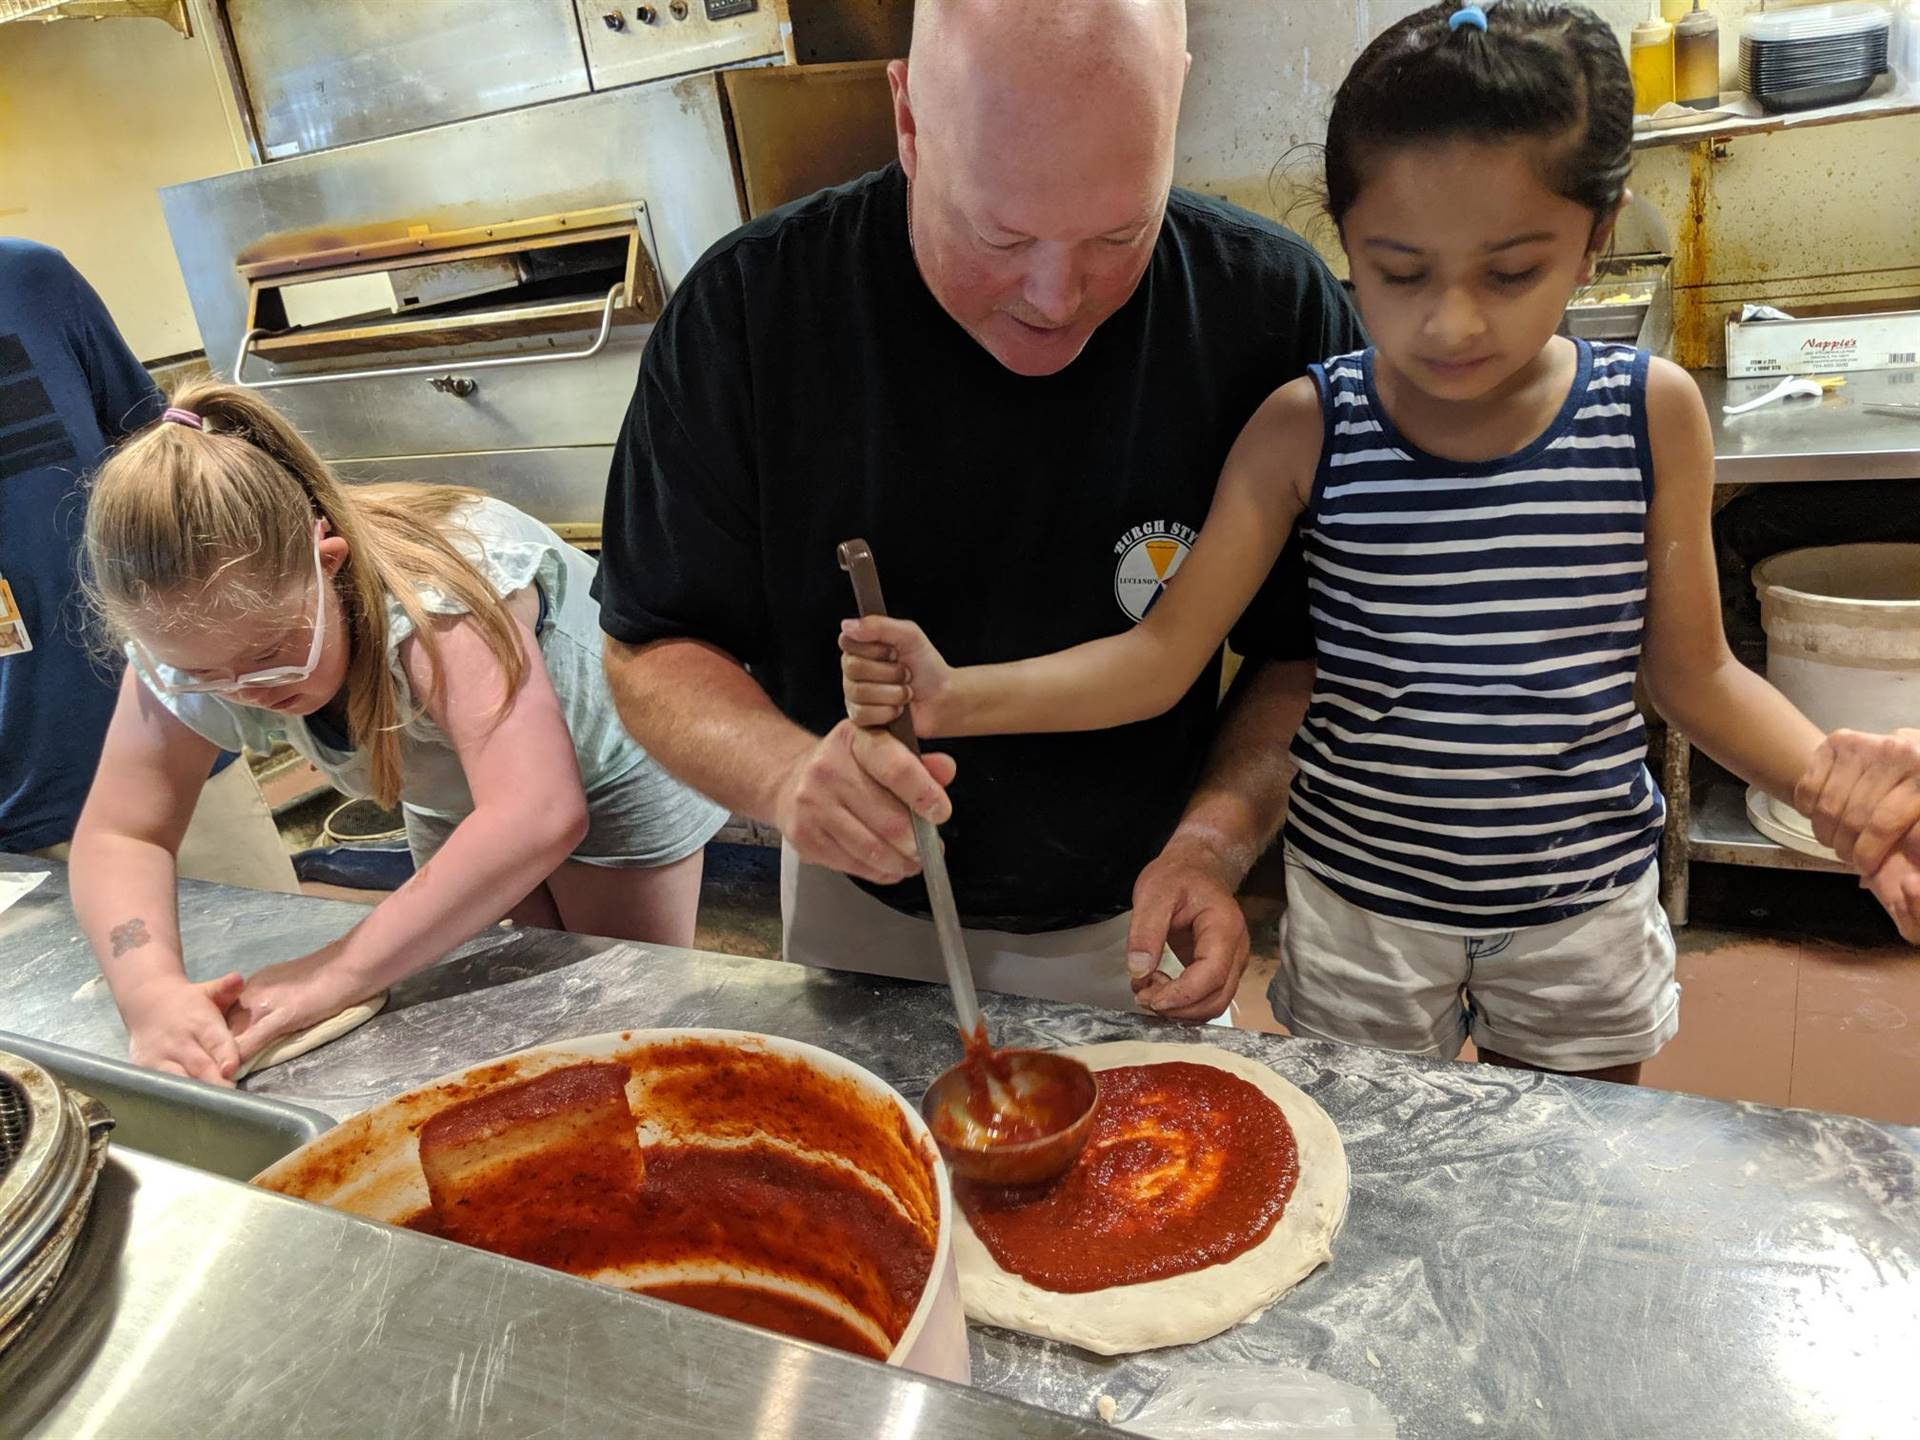 Student spreading sauce on a pizza